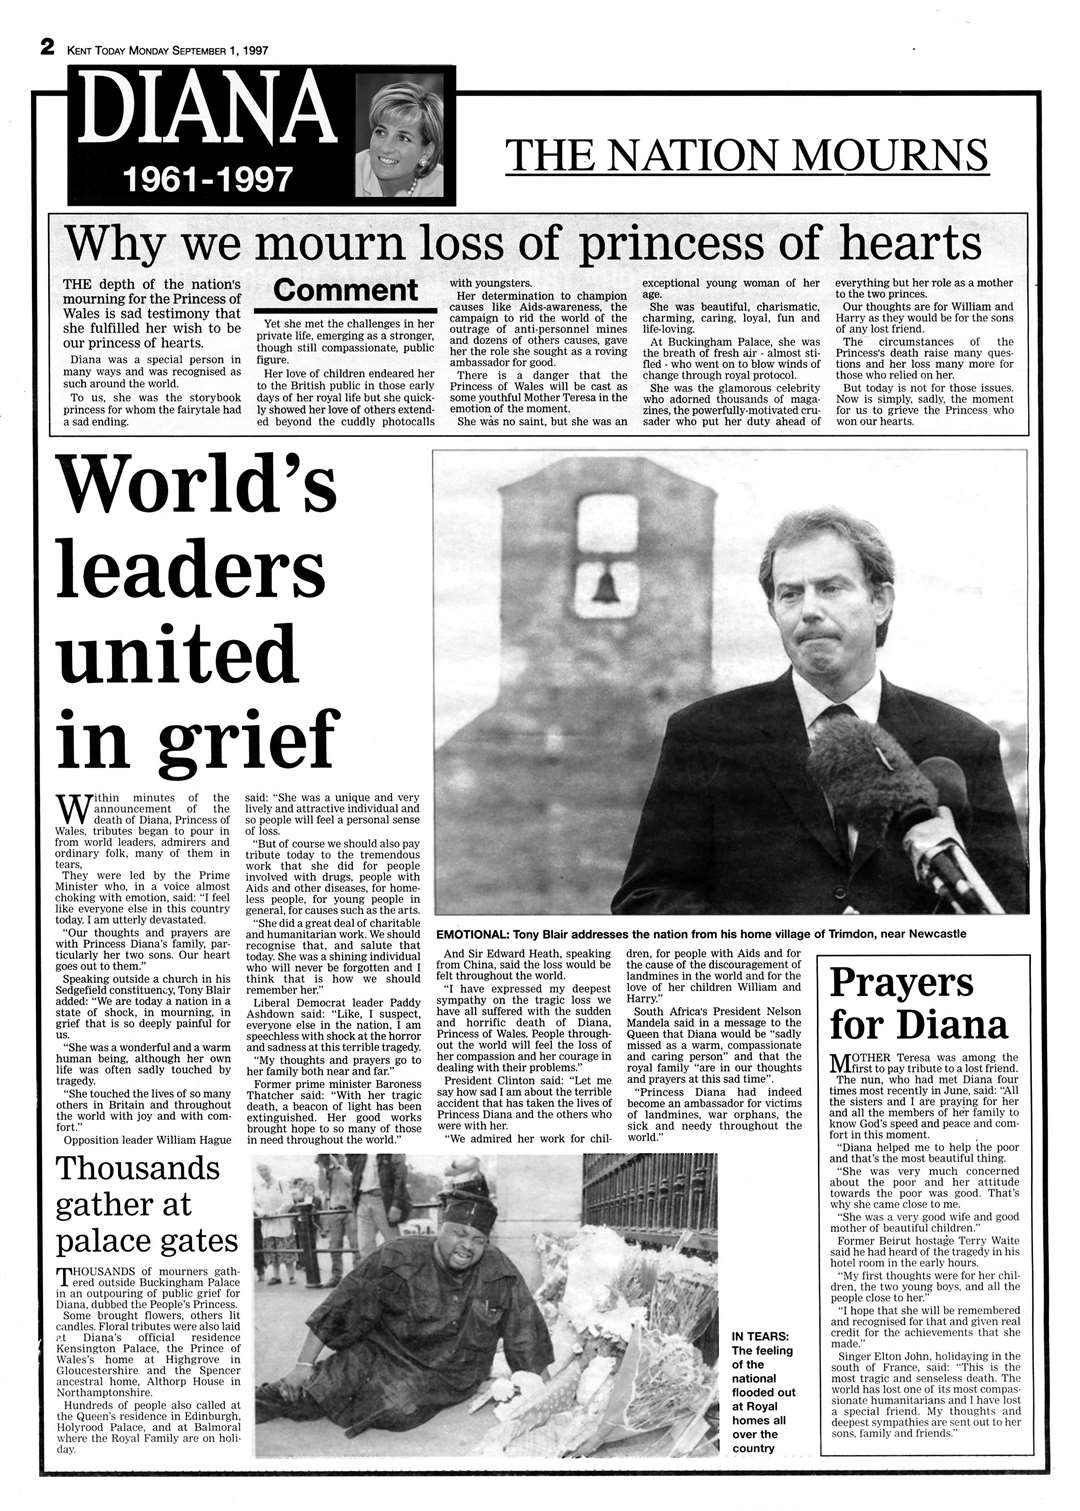 Princess Diana 20 years on: How she touched the hearts of people in Kent